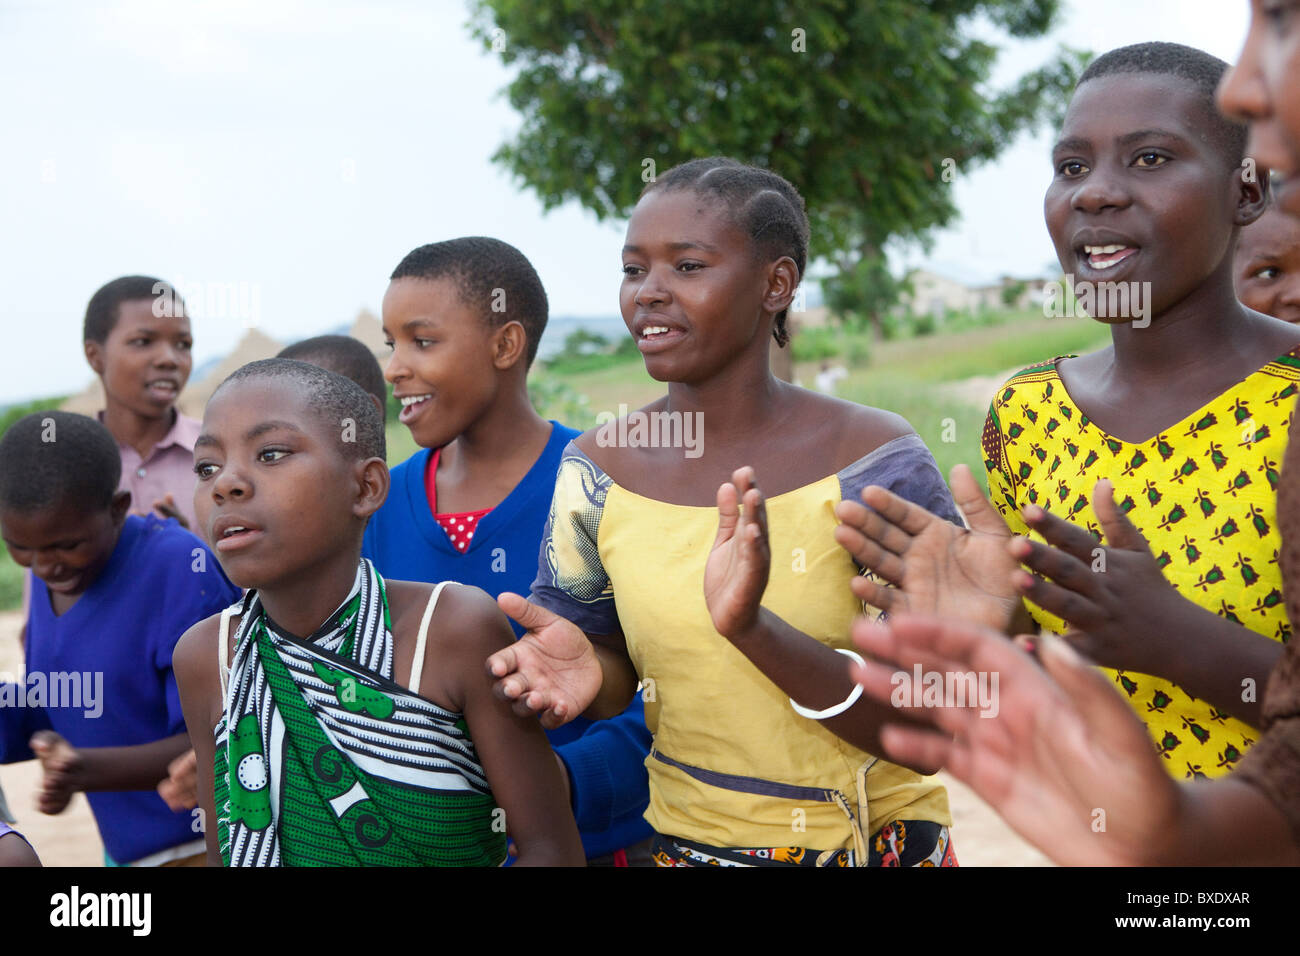 Adolescent girls sing and dance together at an after school program in Dodoma, Tanzania, East Africa. - Stock Image